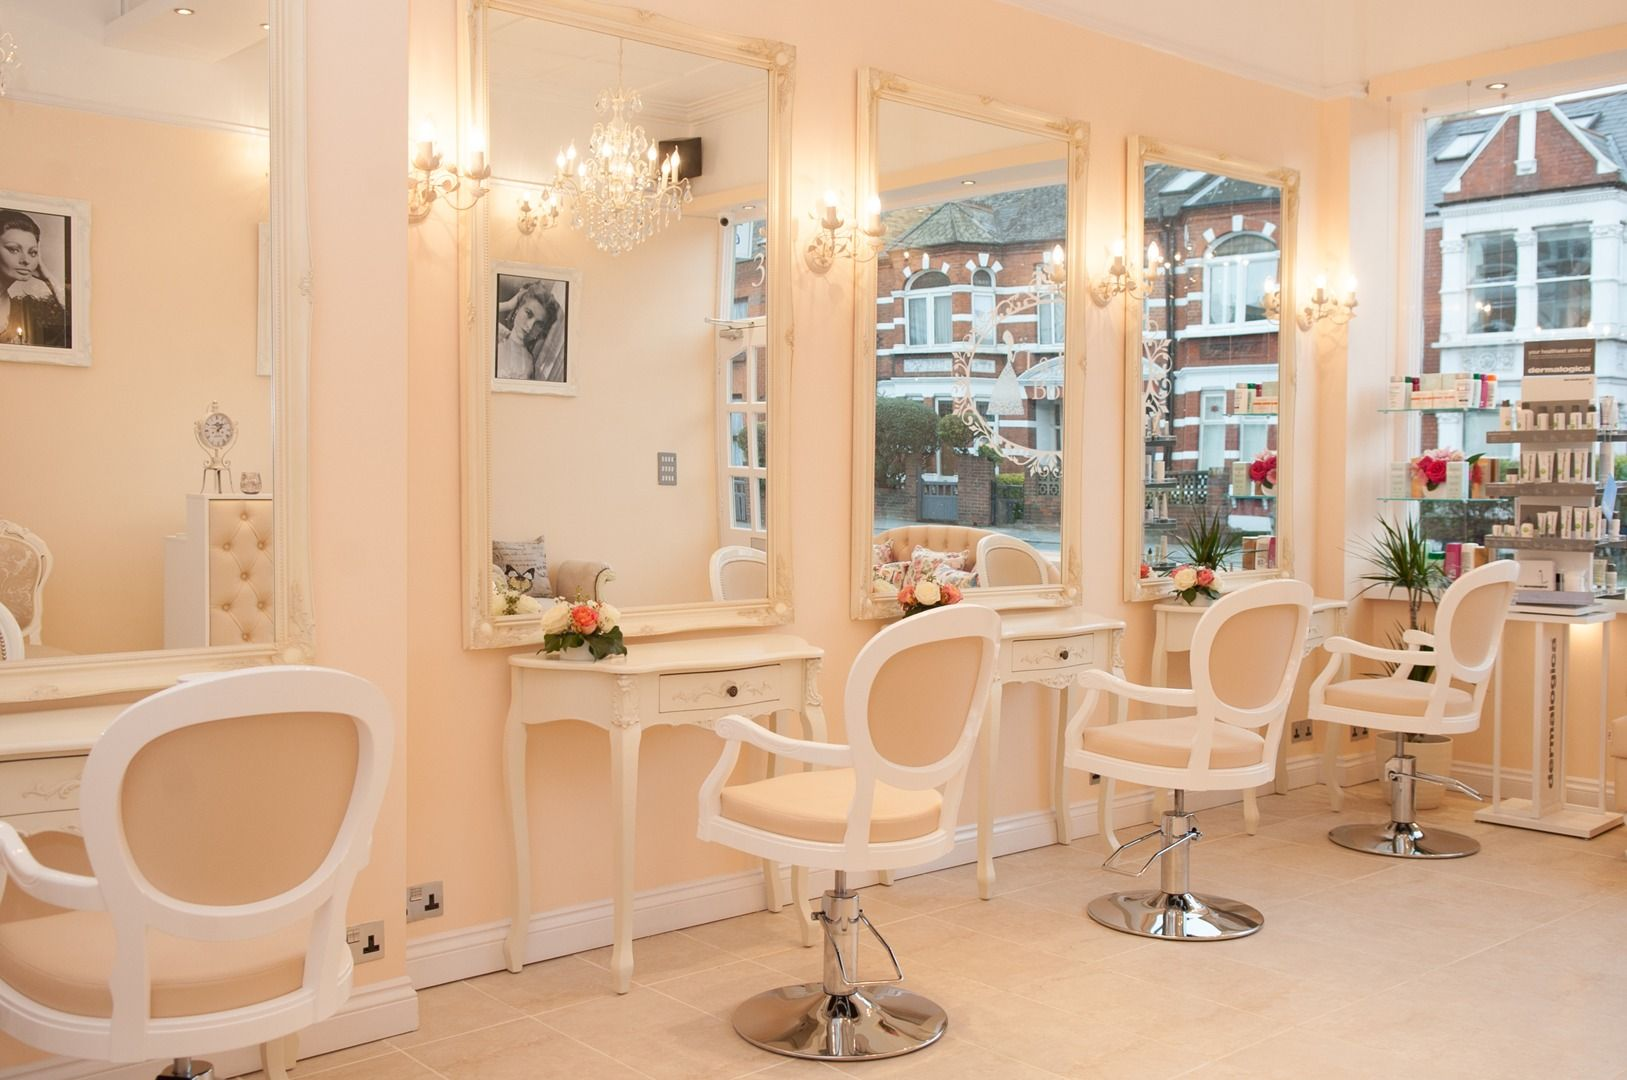 Prime 10 Hair Guidelines Adopted by Boutique Hair Salon in Melbourne